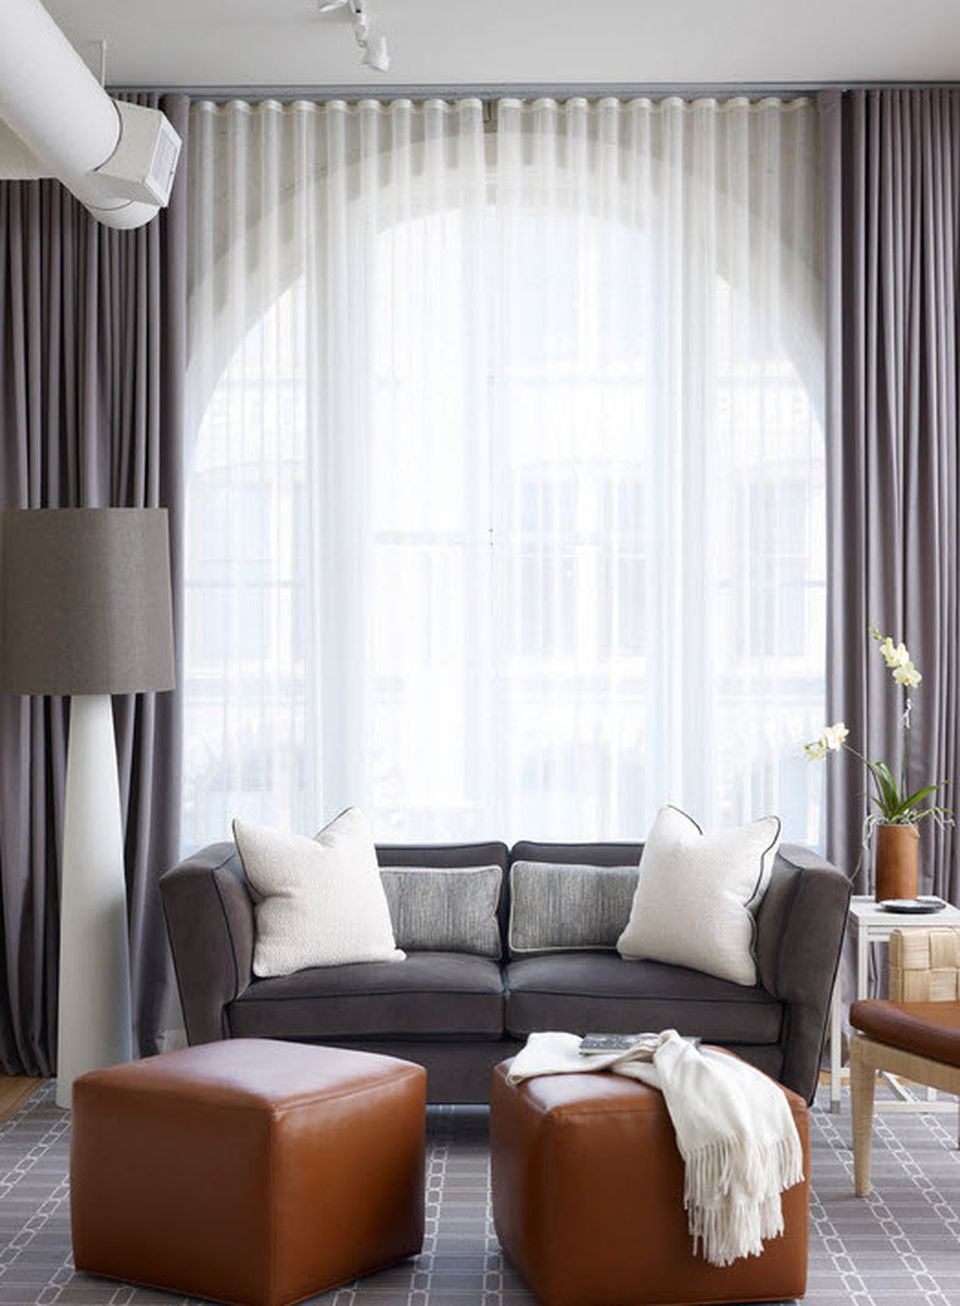 Awesome Tall Curtains Ideas for Living Room 39 - Hoommy.com on Living Room Drapes Ideas  id=81793